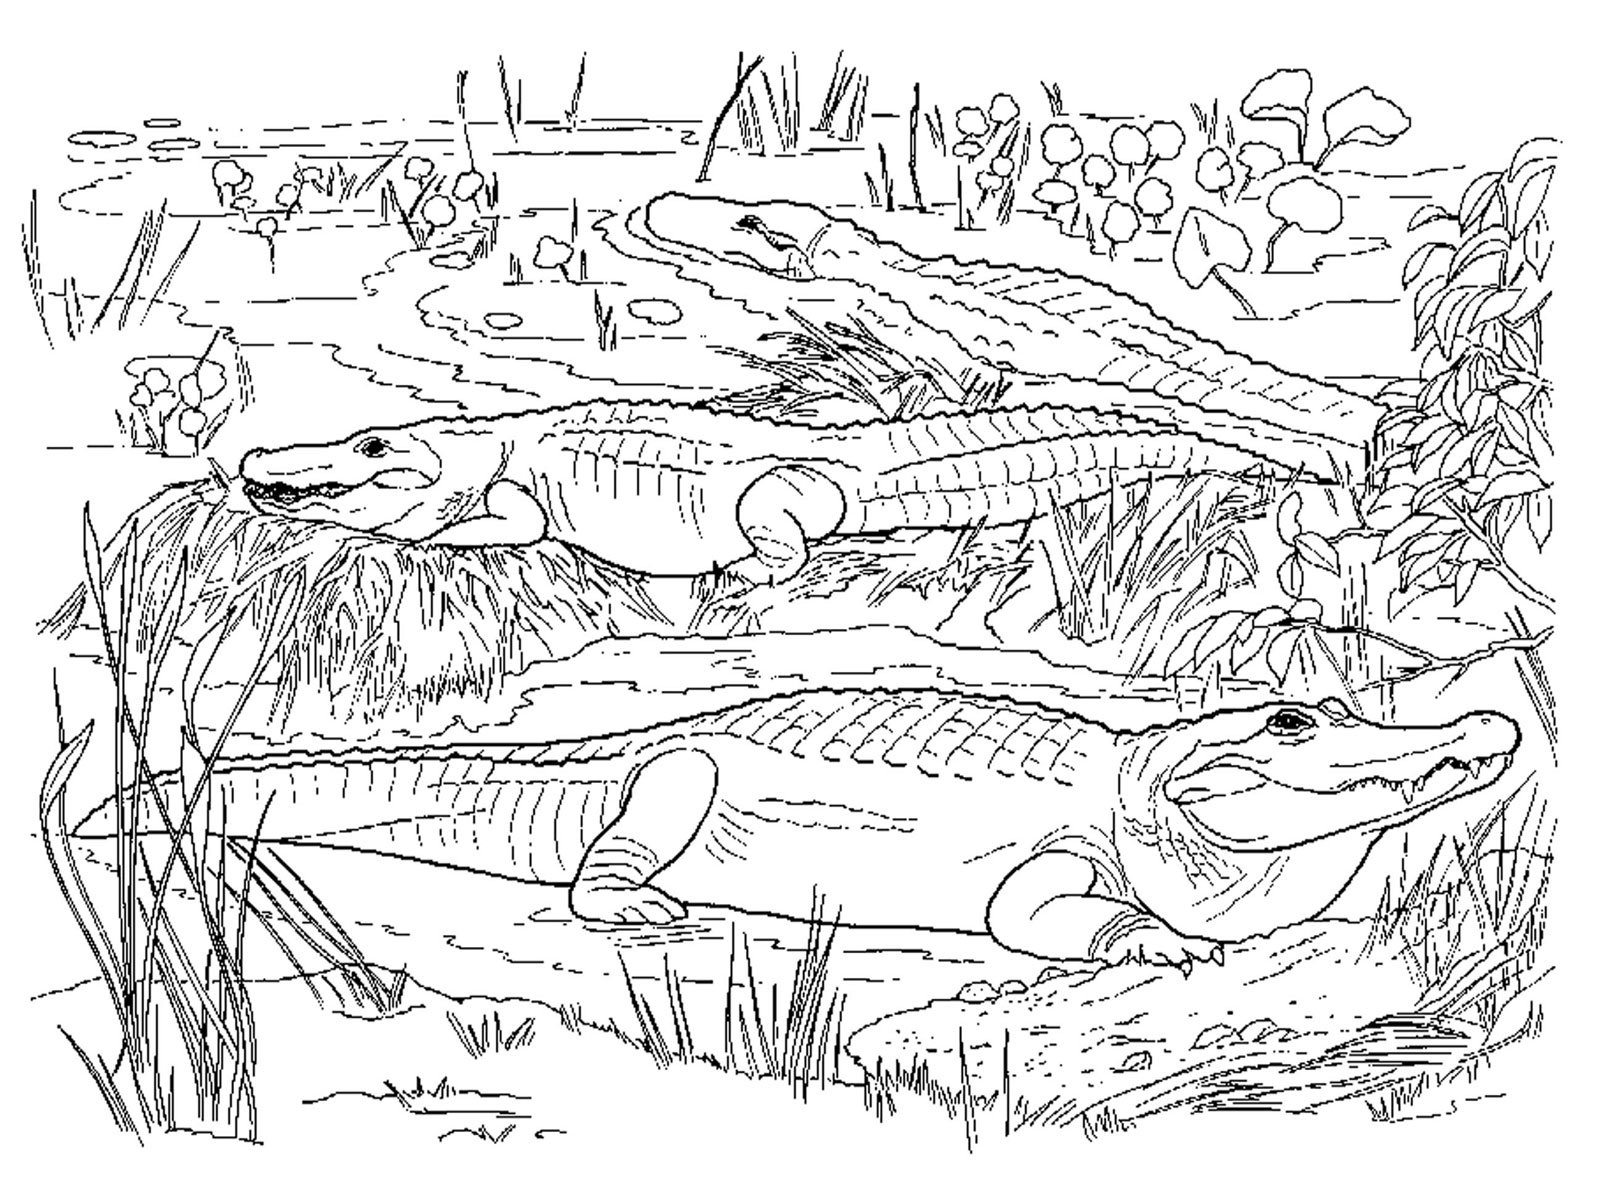 coloring pages for reptiles alligators - photo#7